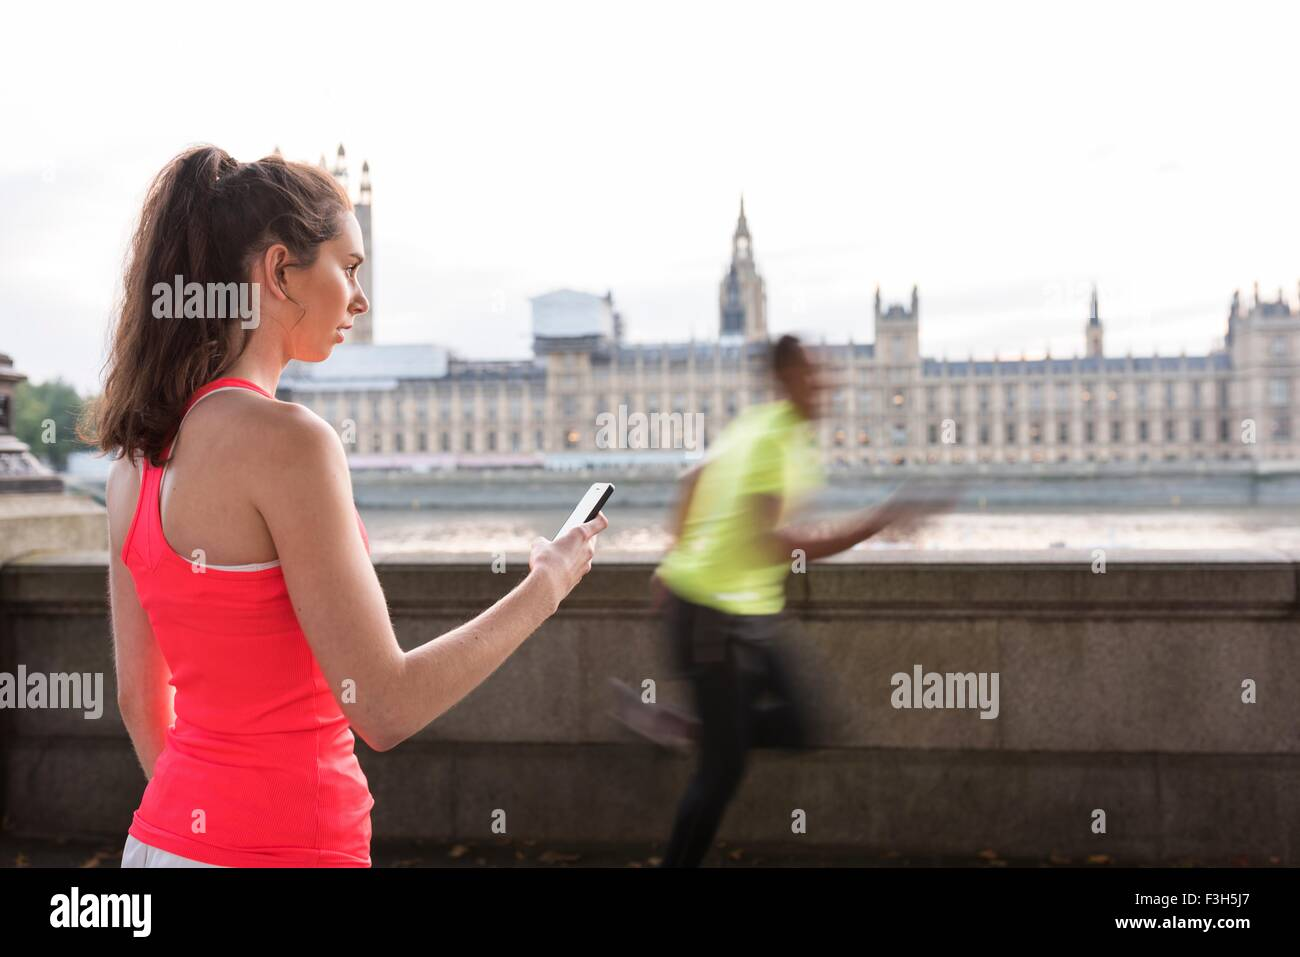 Female trainer timing male runner on Southbank, London, UK - Stock Image